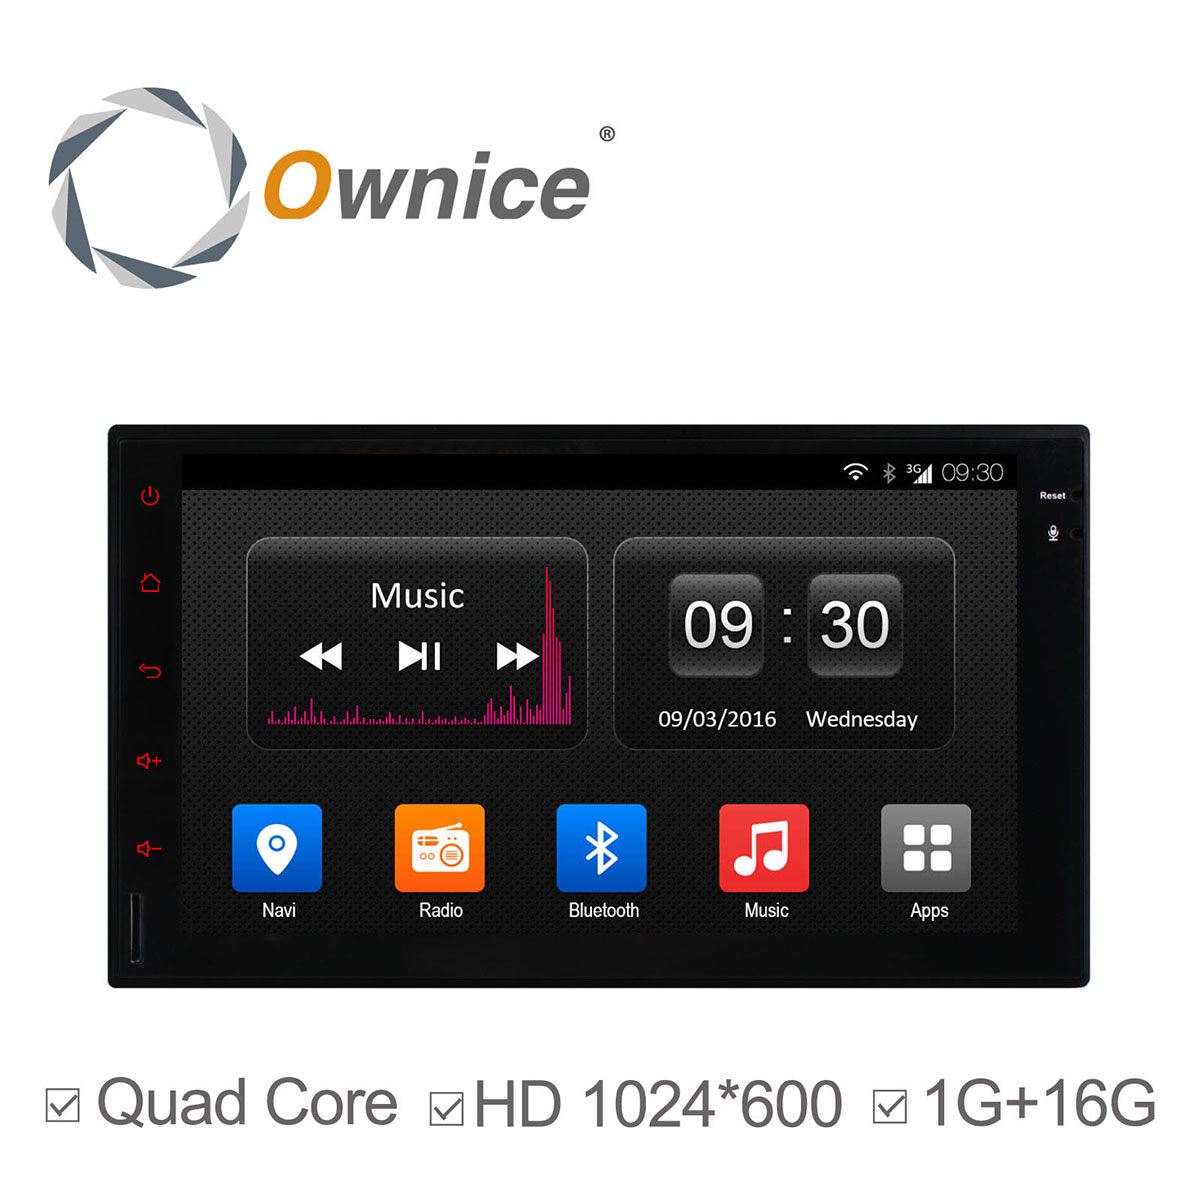 Ownice C300 2 Din Universal Android 4.4 Full Touch Panel GPS Navigation Car dvd  Radio Player Quad Core mirror link wifi bt